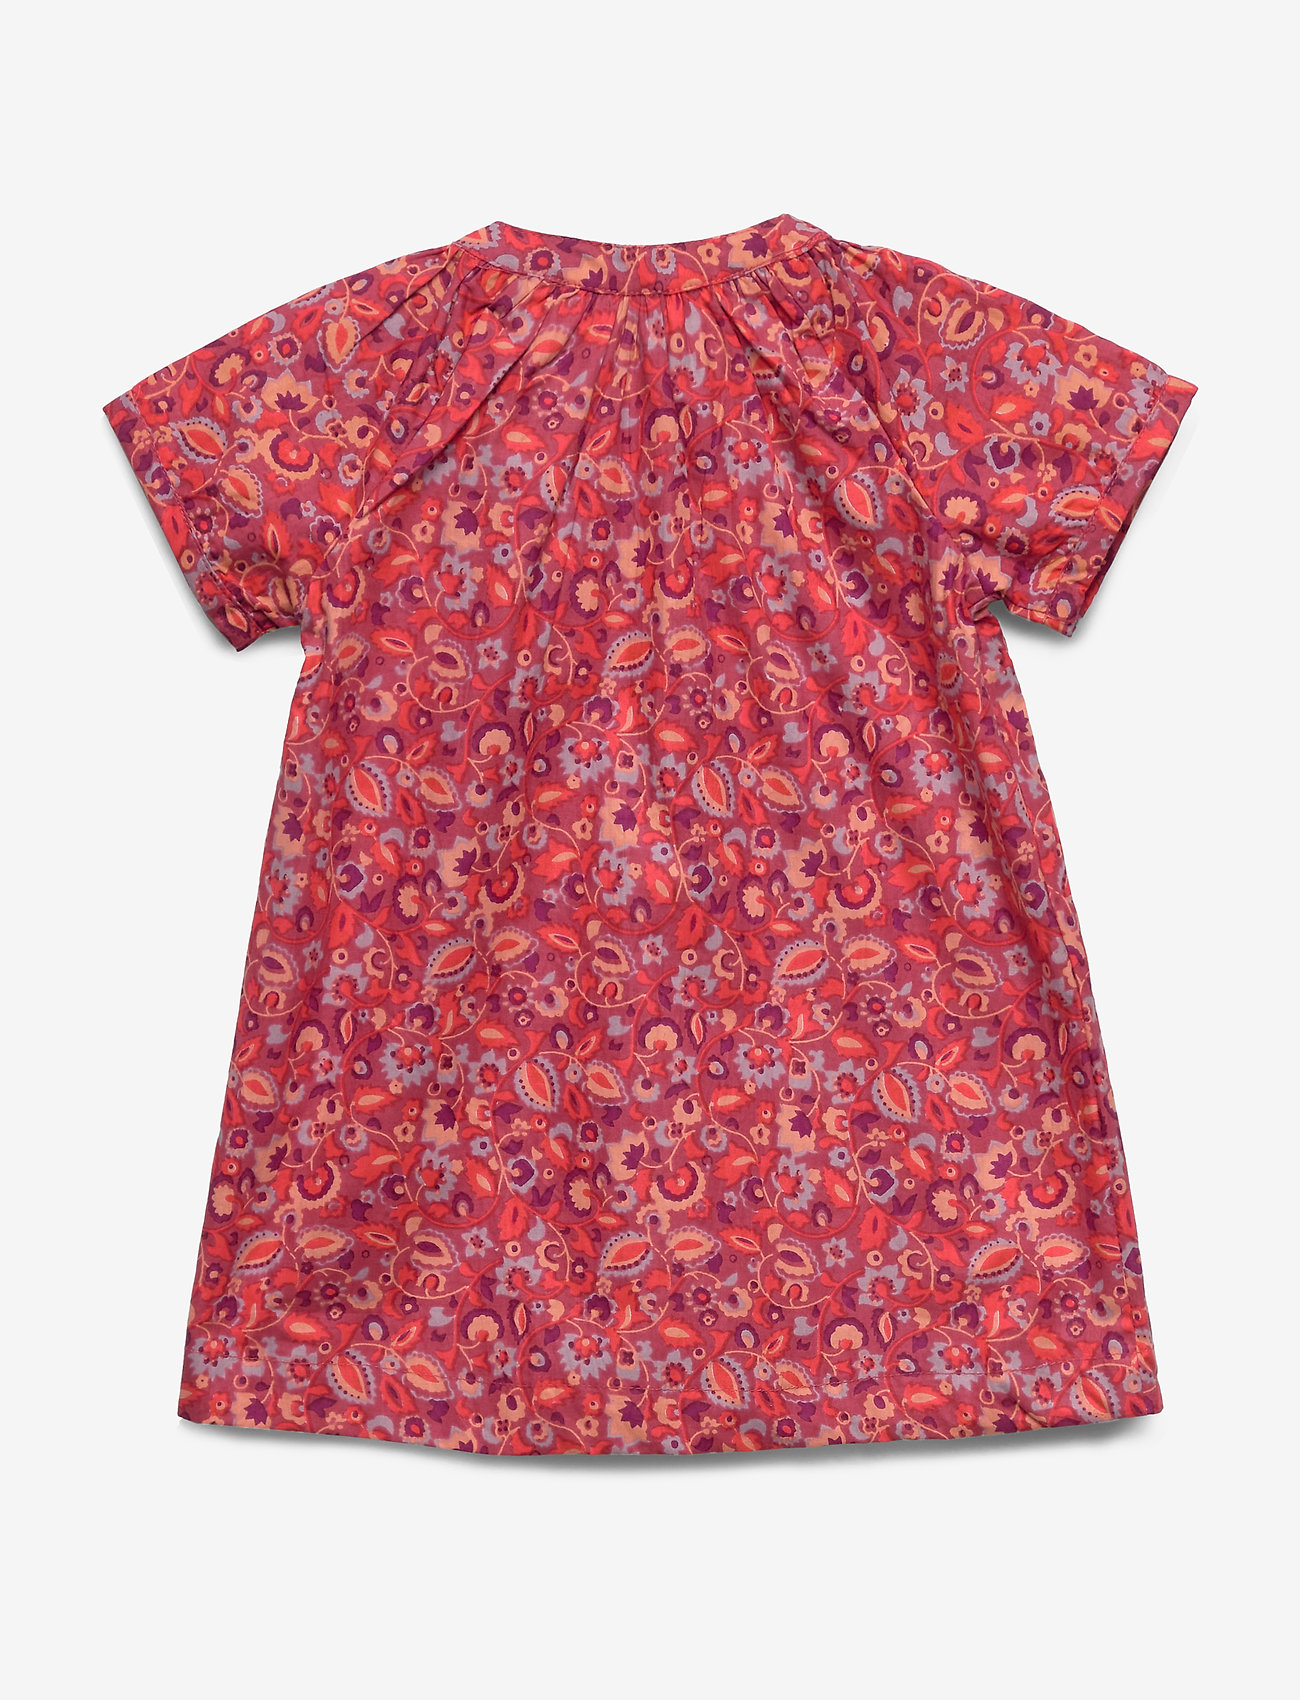 Noa Noa Miniature - Dress short sleeve - dresses - baroque rose - 1